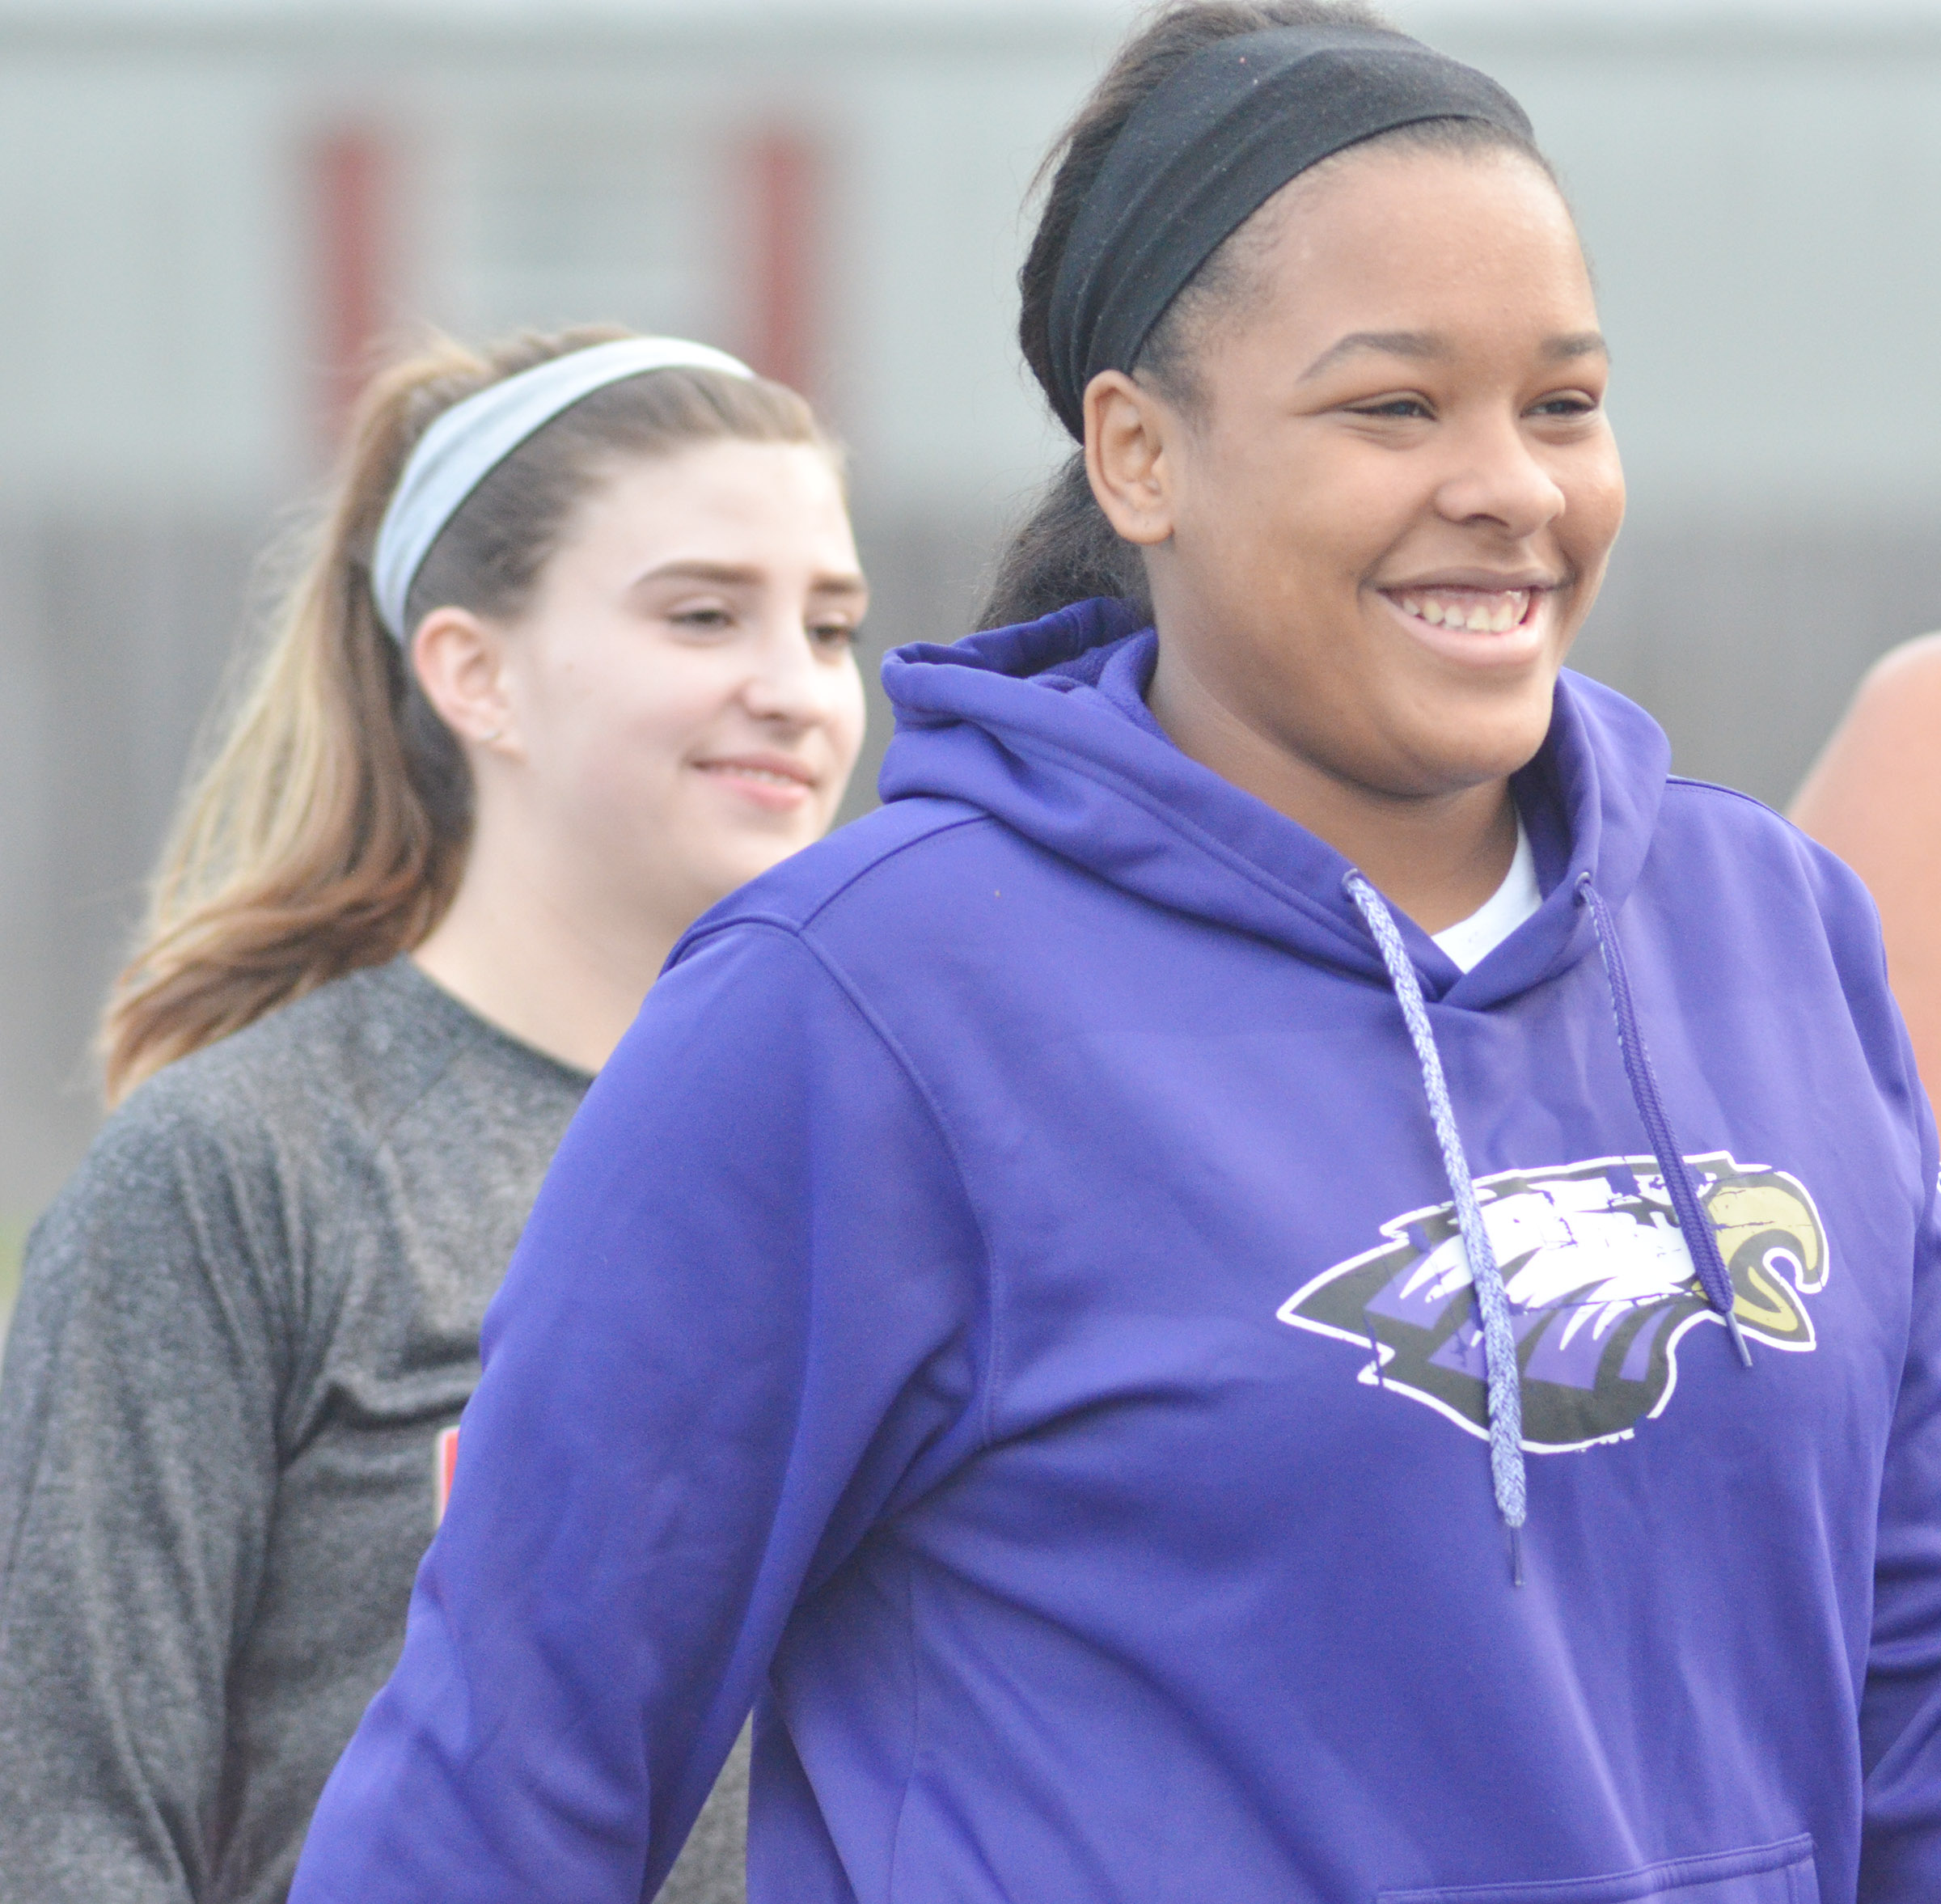 CHS senior Kayla Young is all smiles as she begins the 5K race.